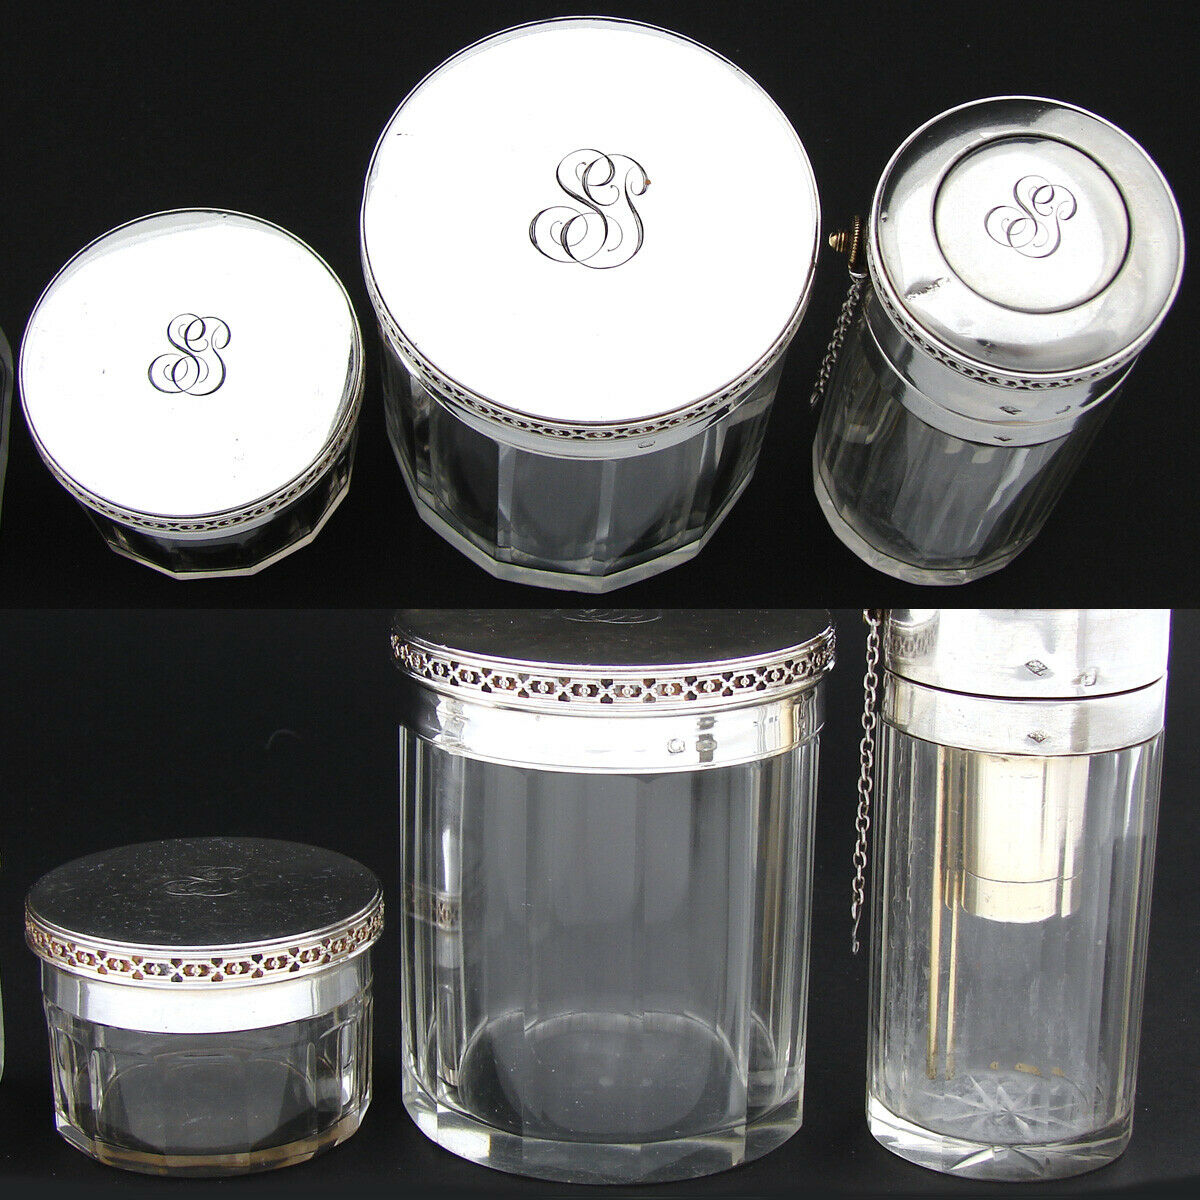 Antique French Sterling Silver & Cut Glass 6pc Vanity Jar, Perfume Bottle Set